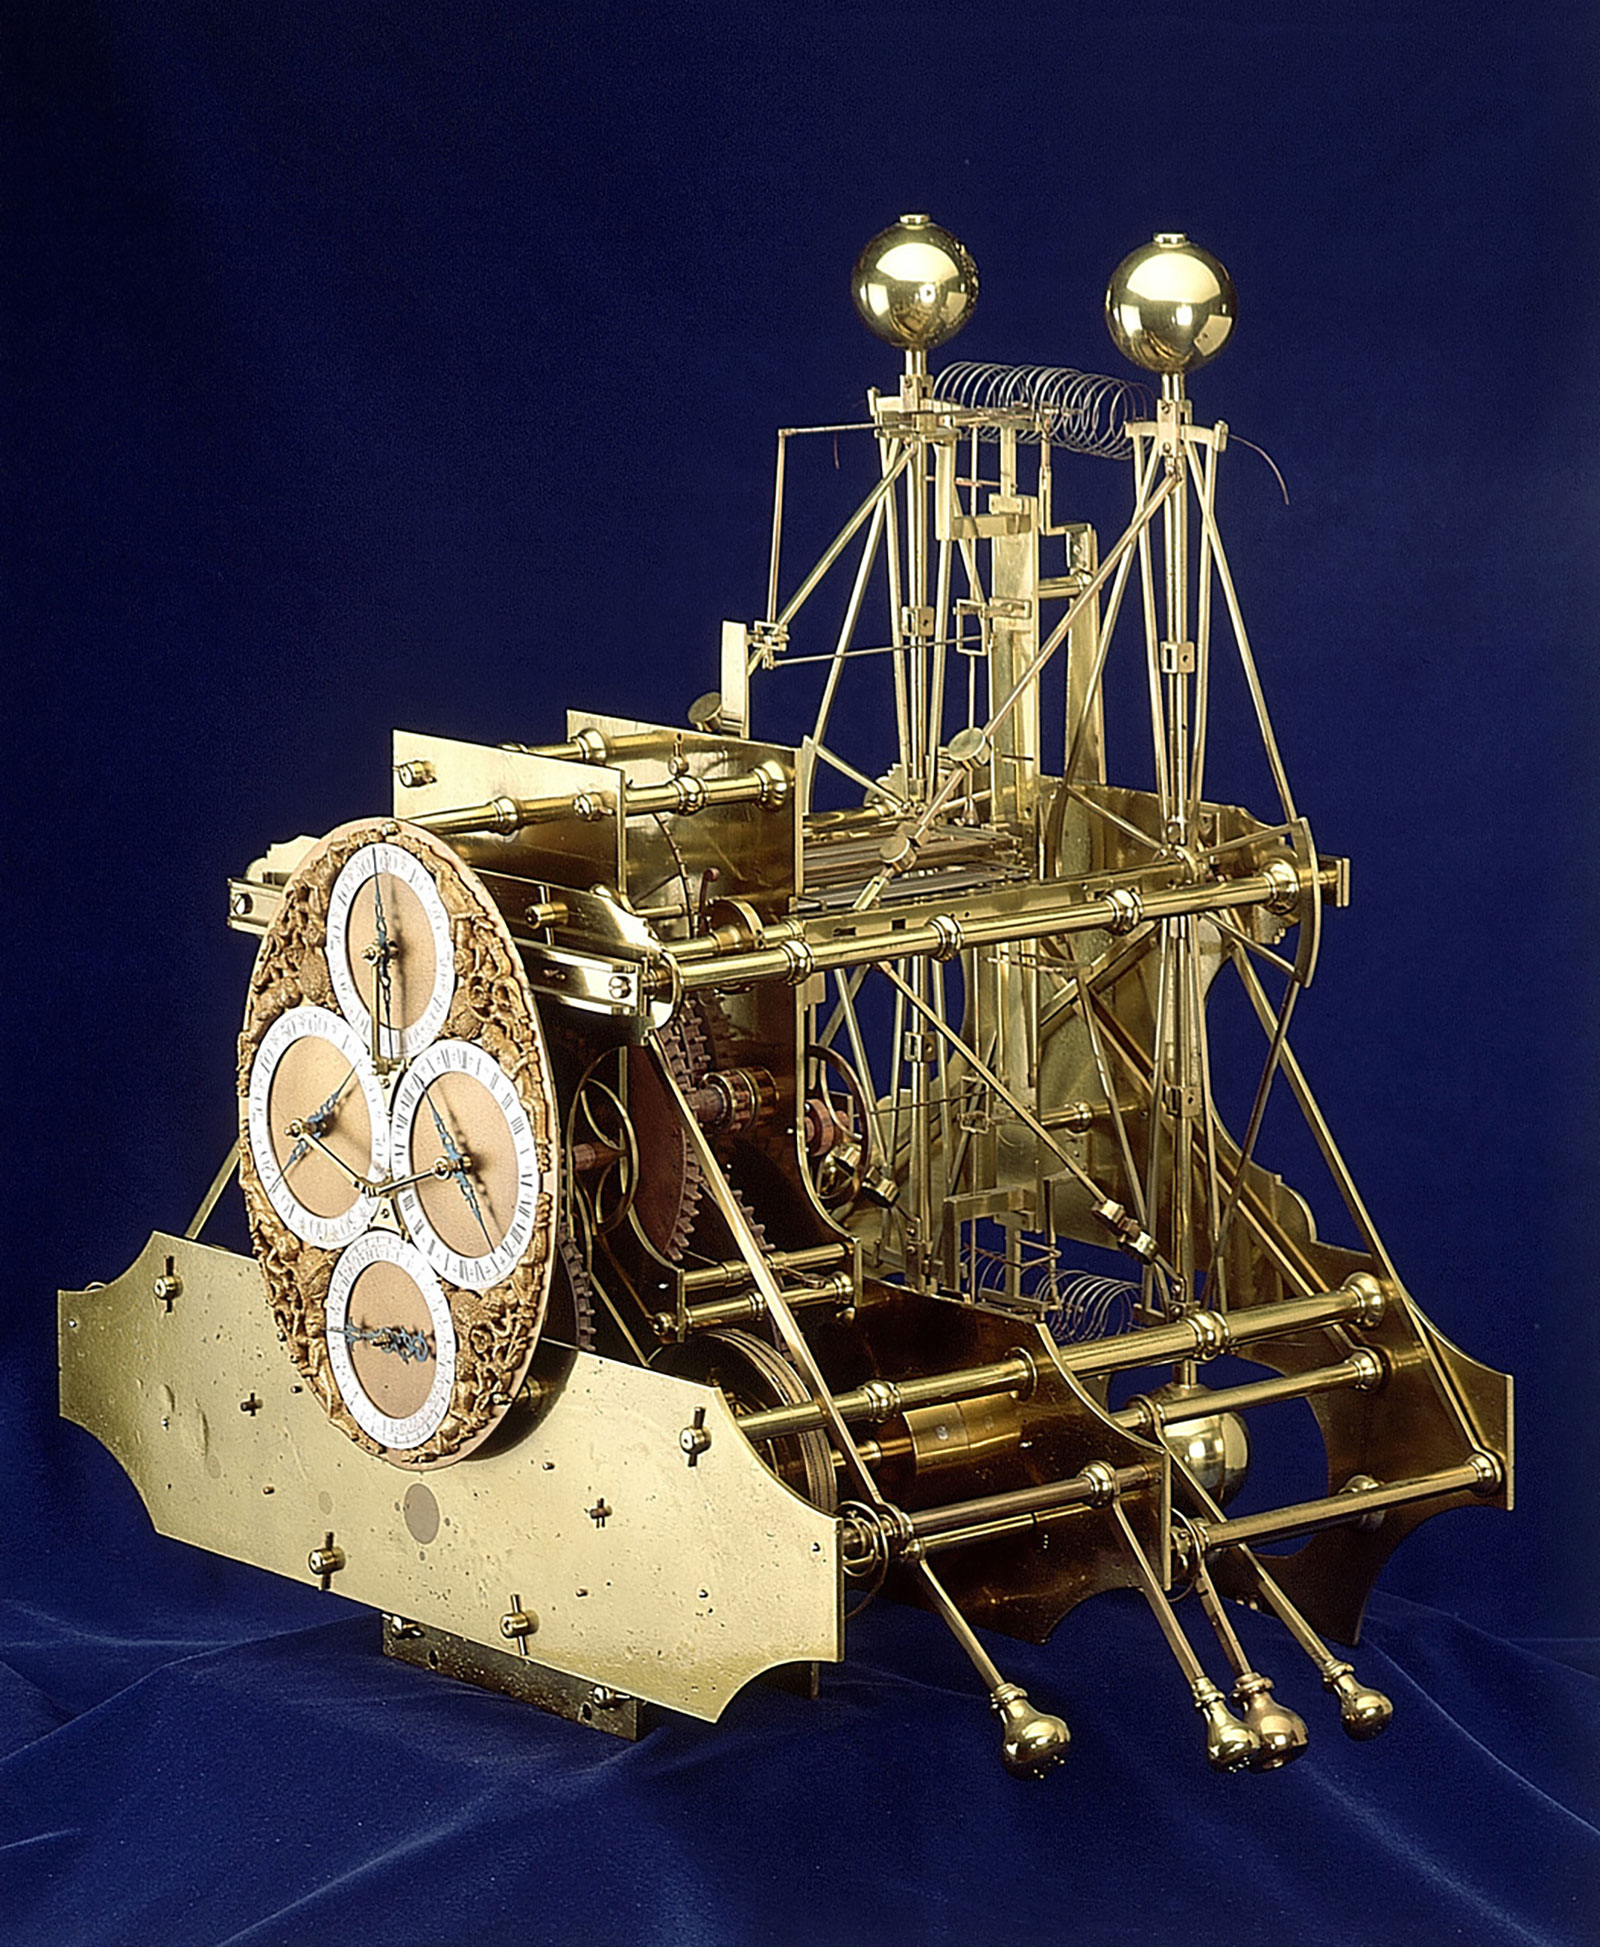 john harrison h1 sea clock